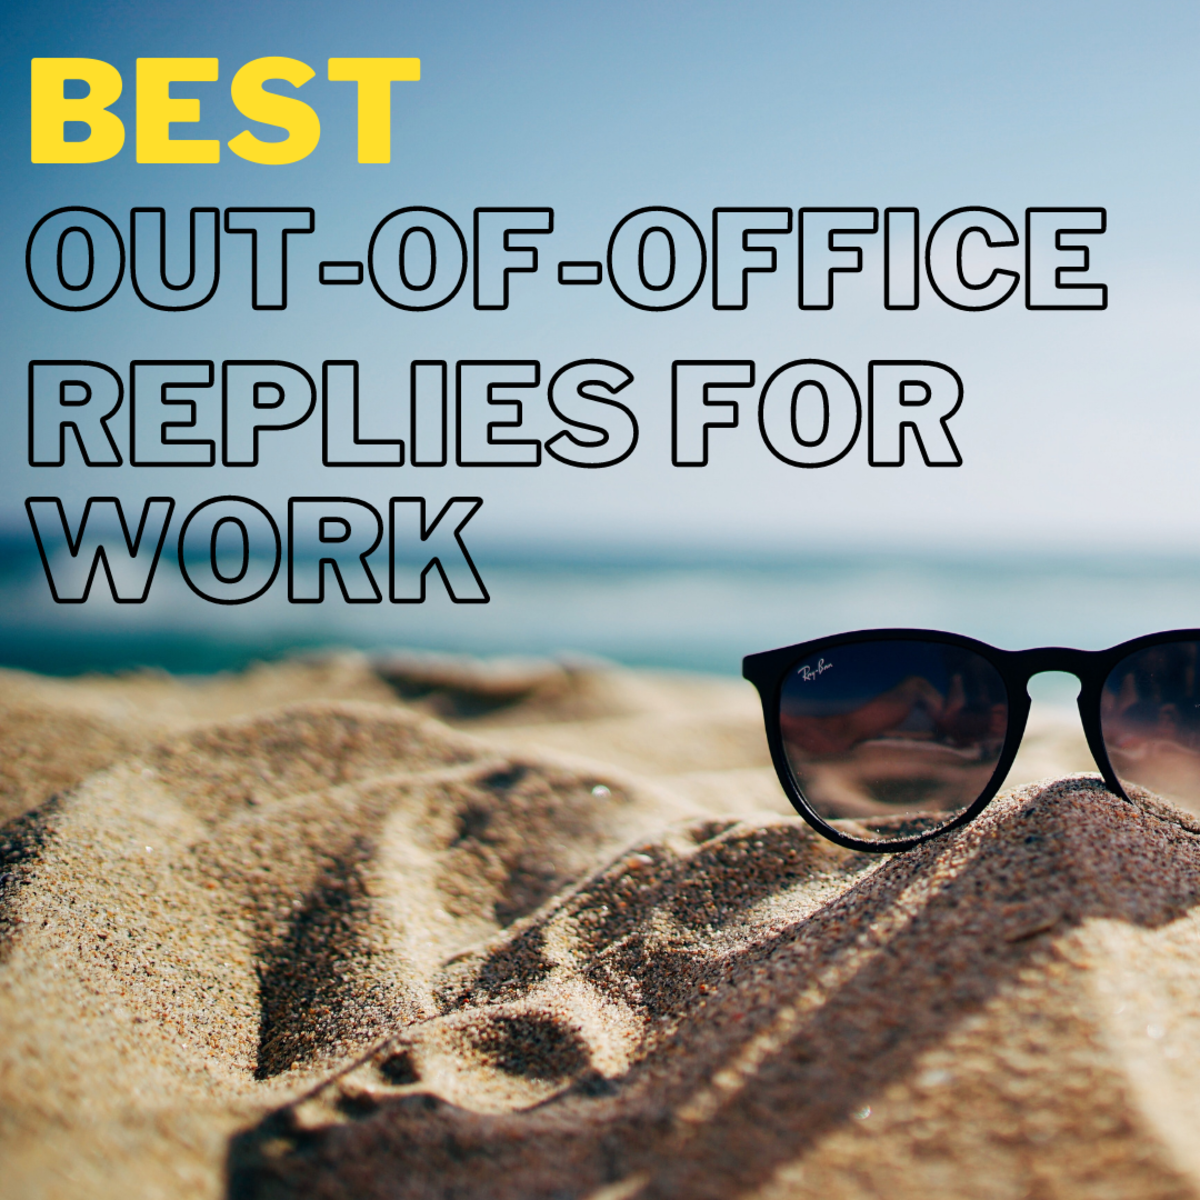 Best Out-of-Office Away Messages for Work